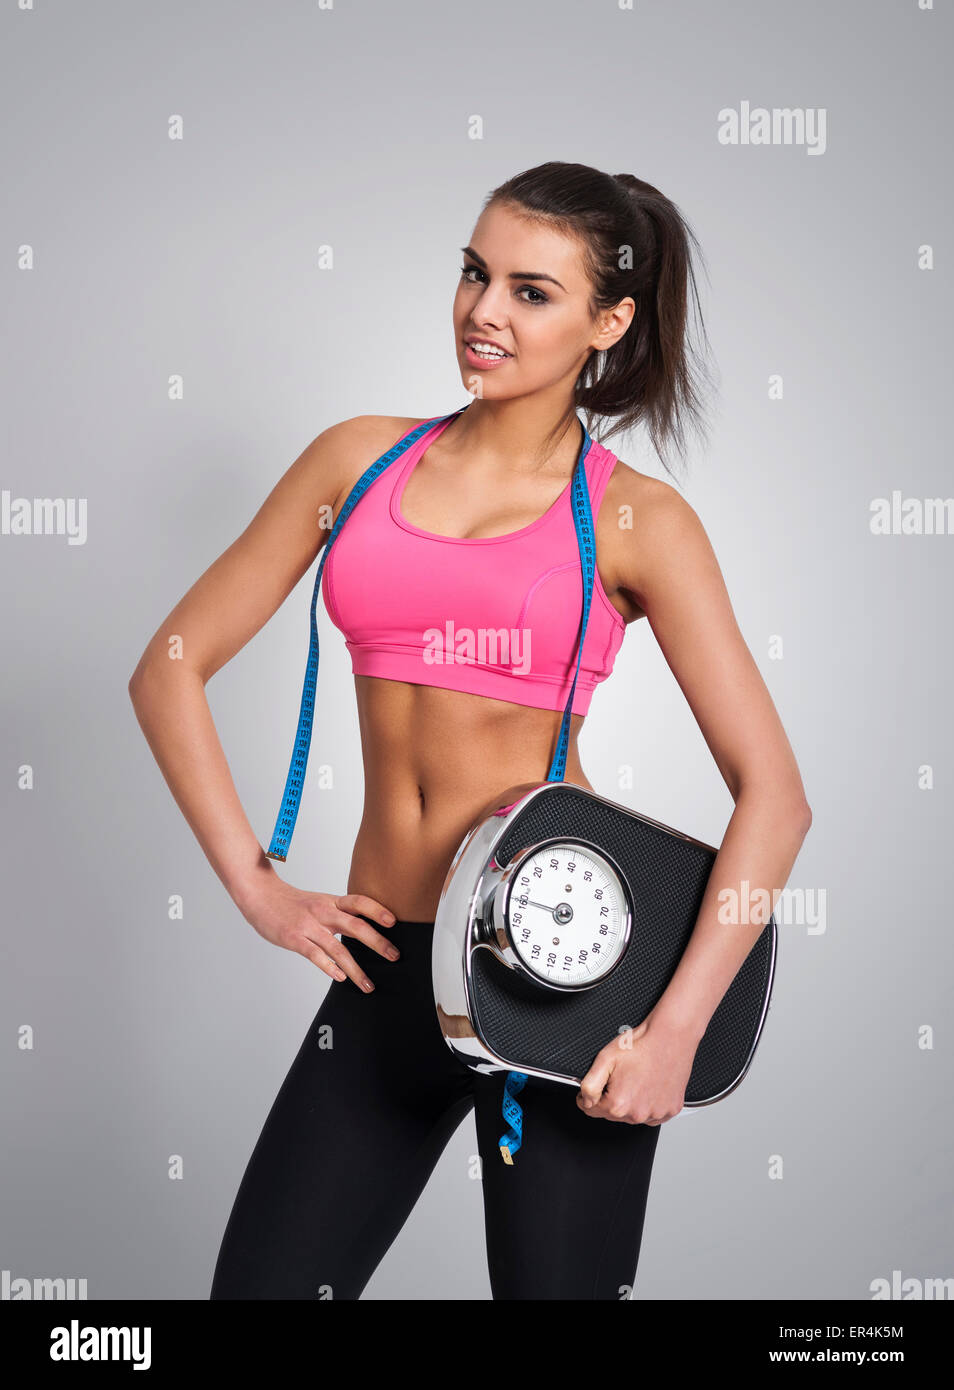 Happy woman holding weight scale. Debica, Poland - Stock Image